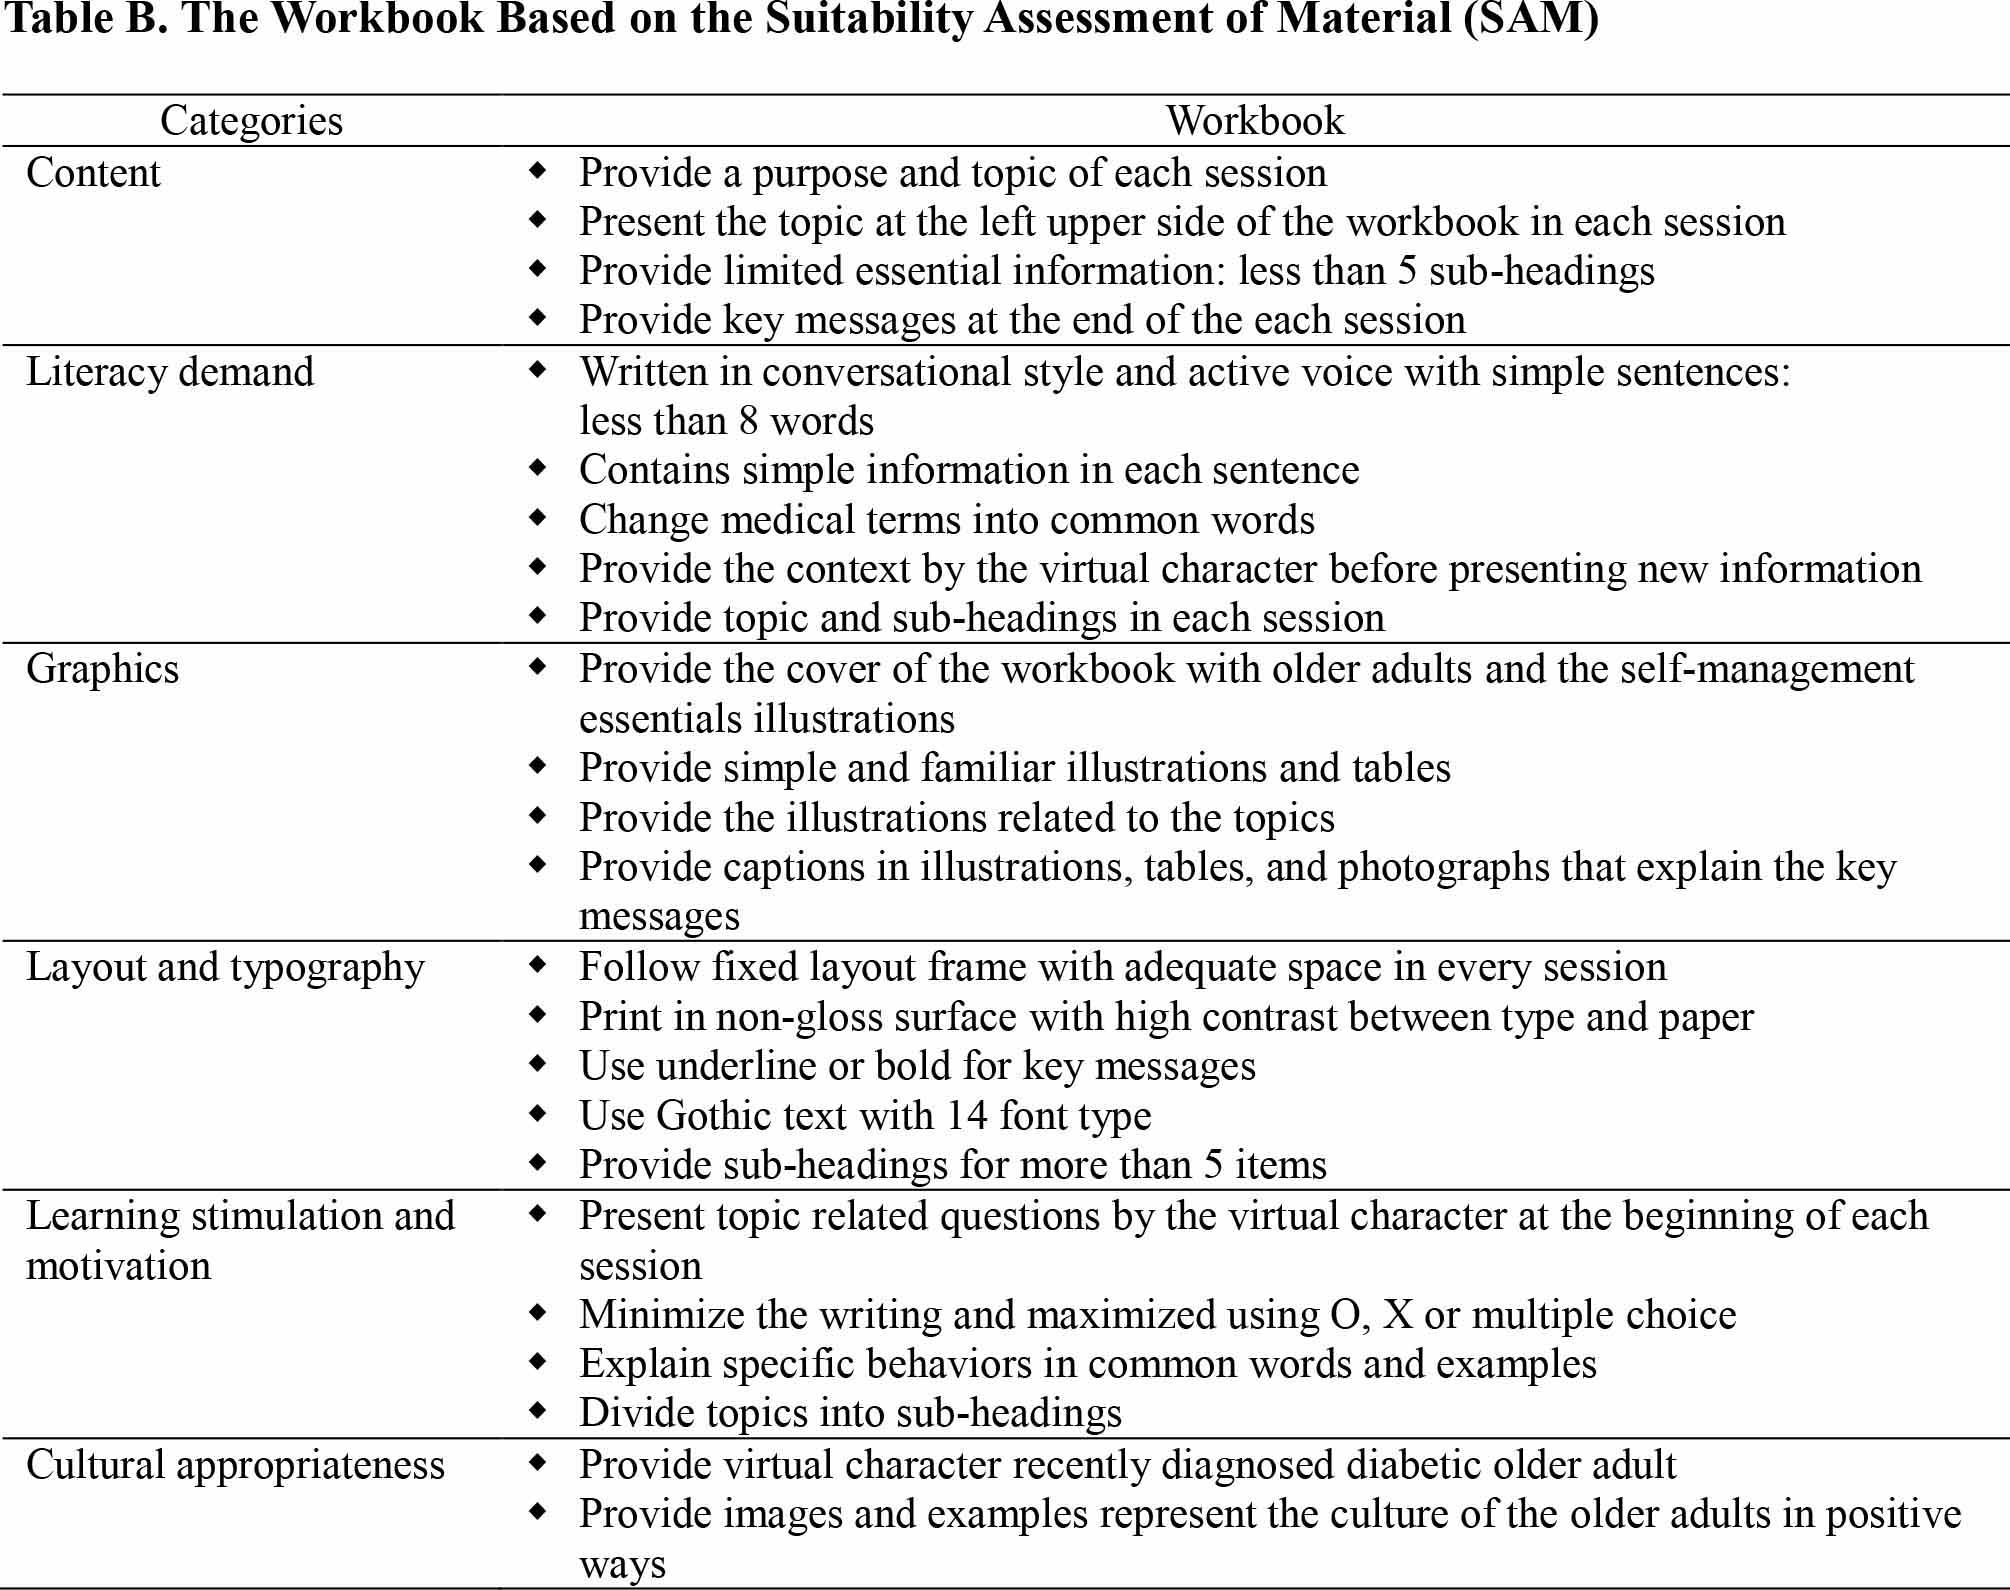 The Workbook Based on the Suitability Assessment of Material (SAM)